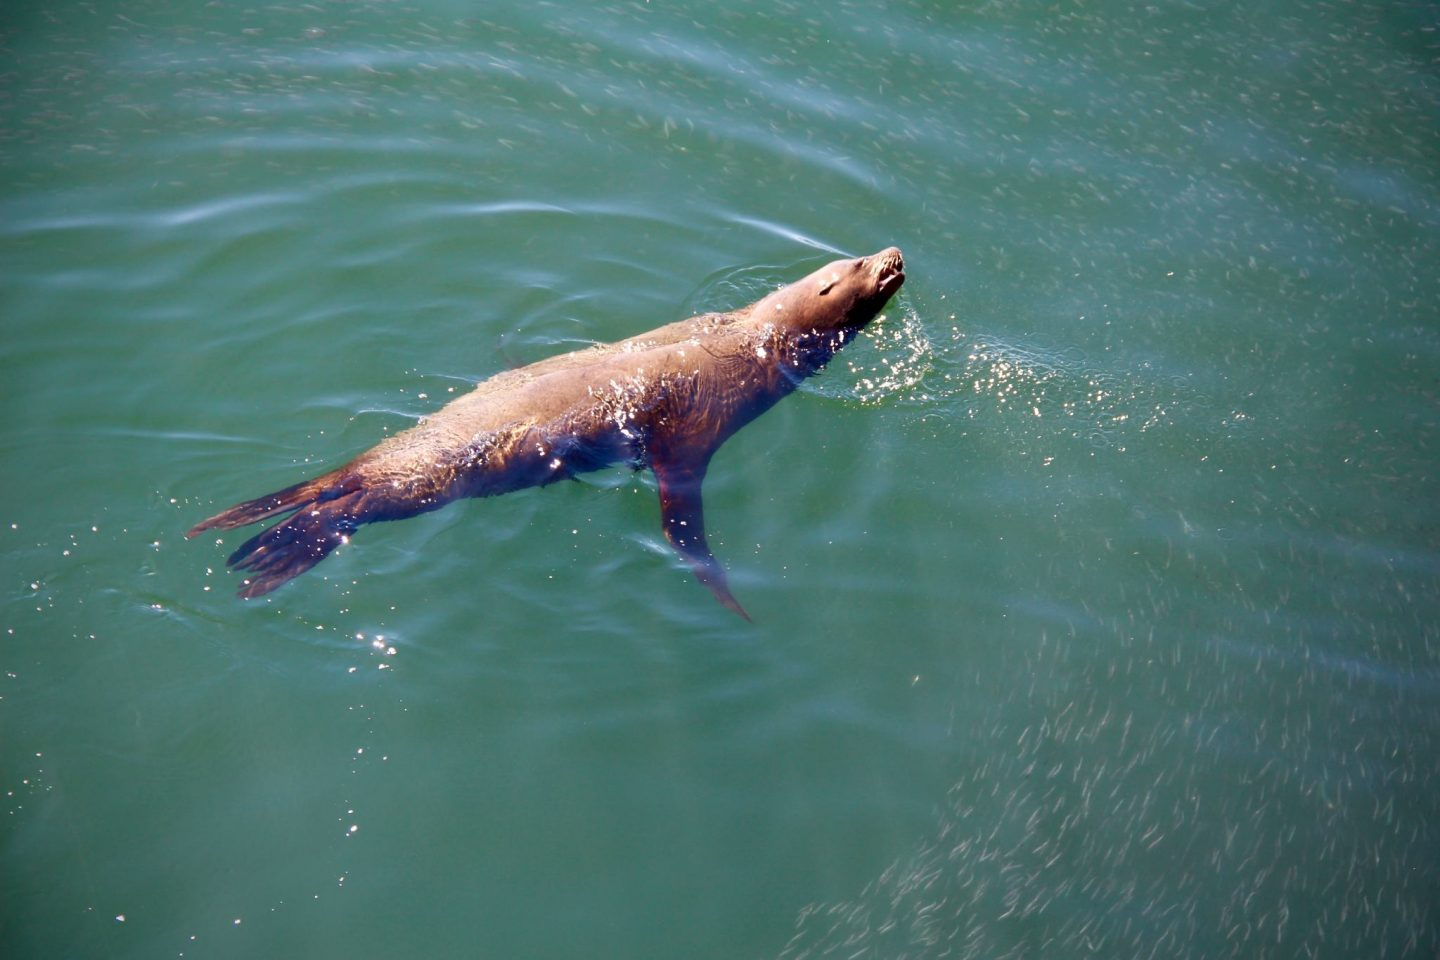 Santa Cruz Pier Sea Lion, Santa Cruz, California - The Spectacular Adventurer